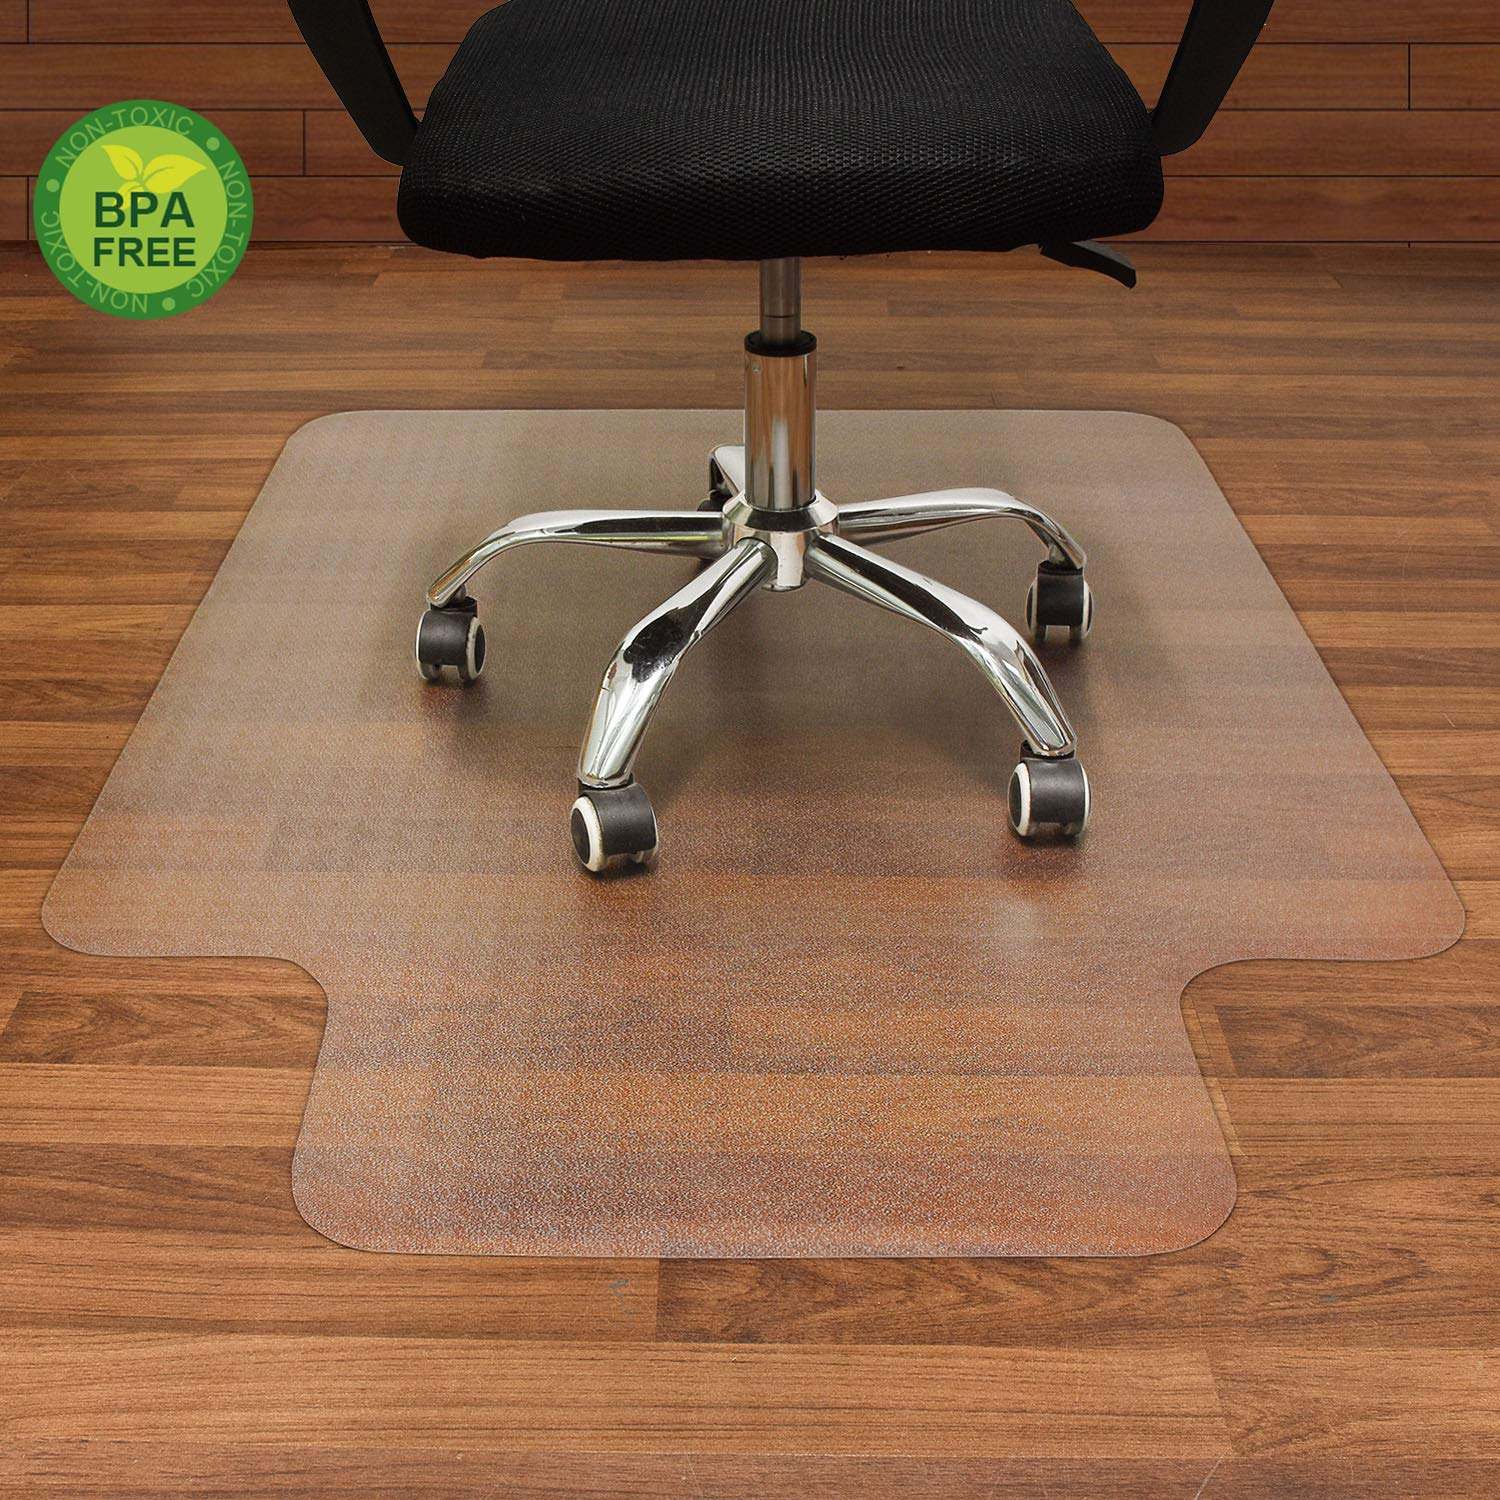 AiBOB Nontoxic Office Chair mat for Hardwood Floor, 36 x 48 inches, Easy Glide for Chairs, Flat Without Curling, Floor Mats for Computer Desk by AiBOB